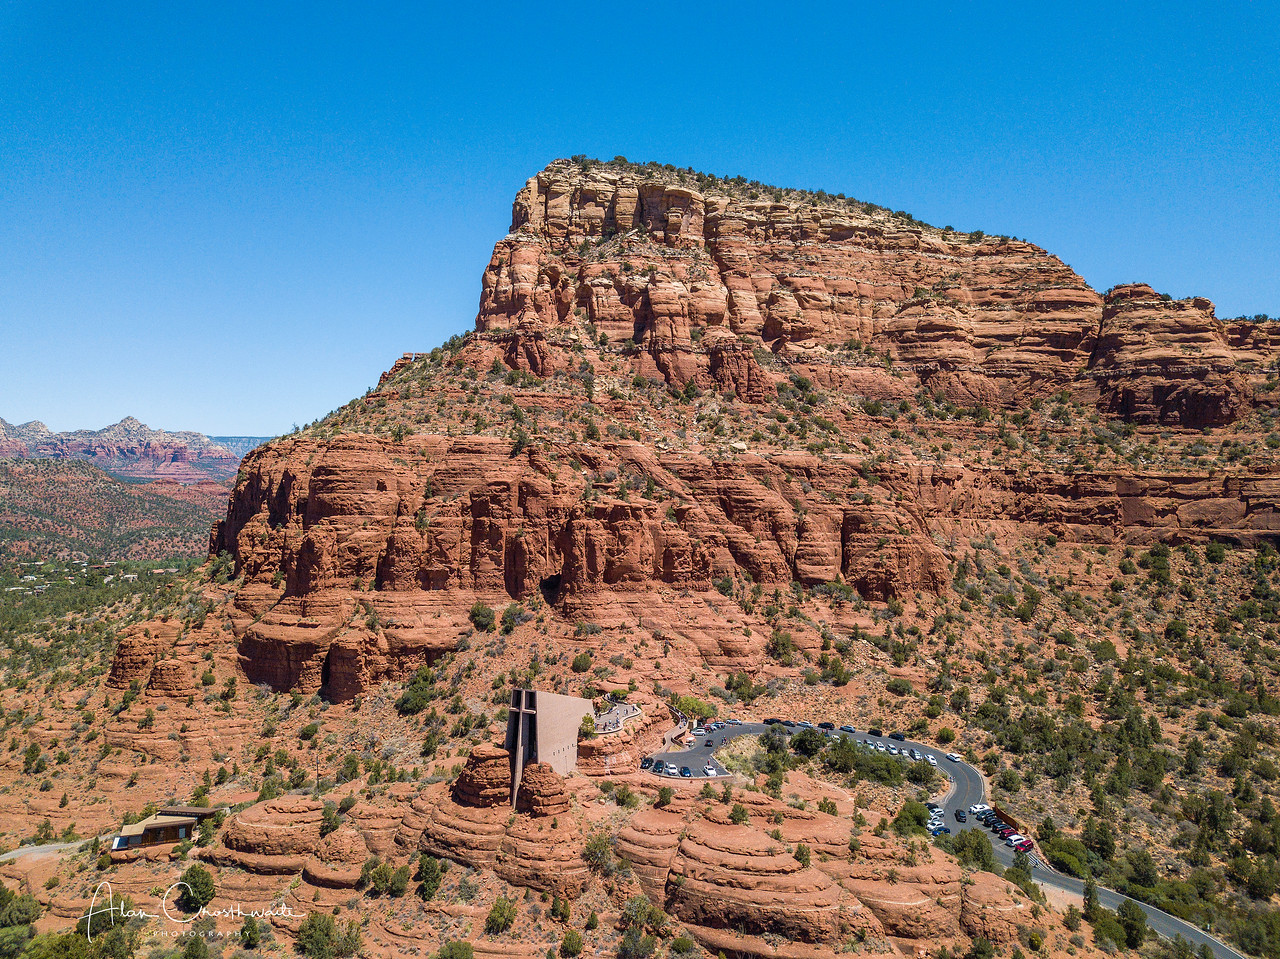 Chapel of the Holy Cross, Sedona, Arizona.